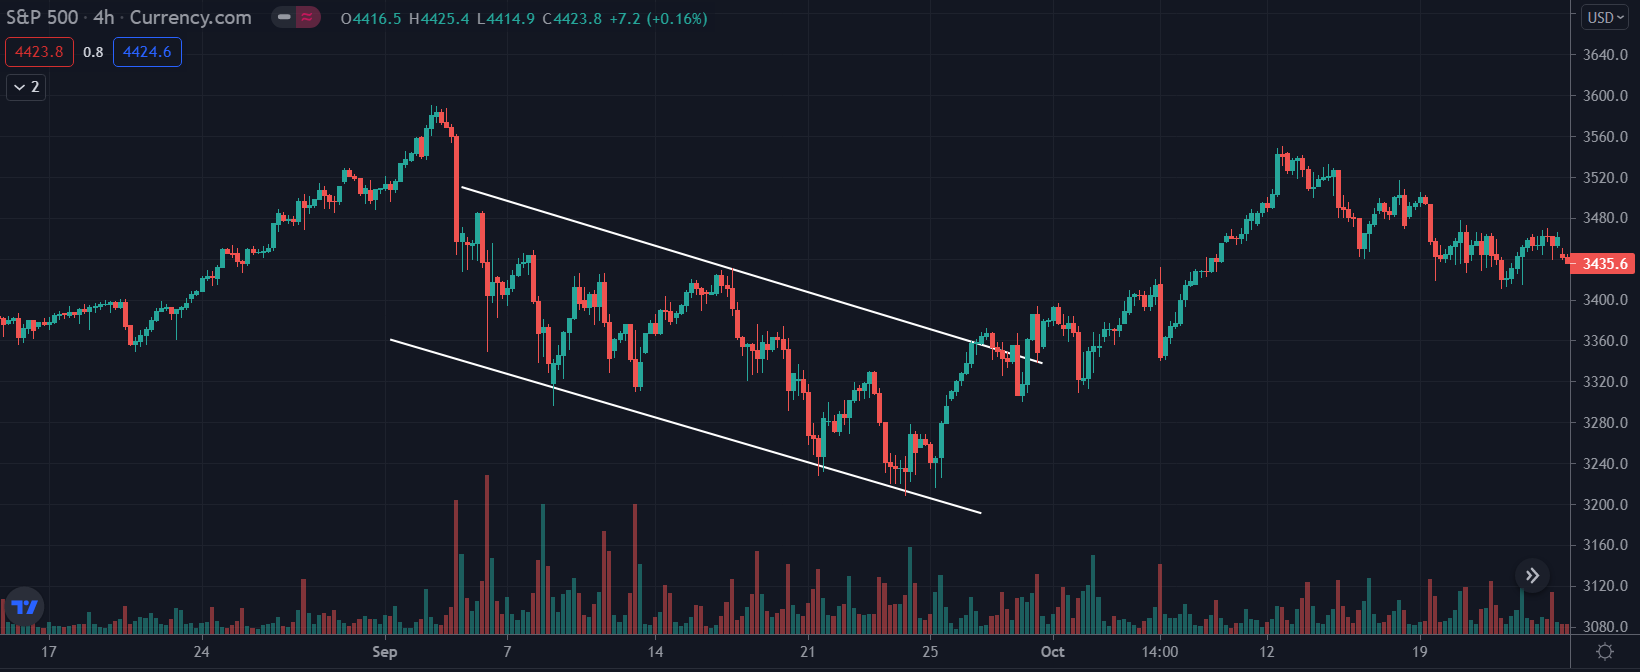 S&P500 Downtrend September 2020